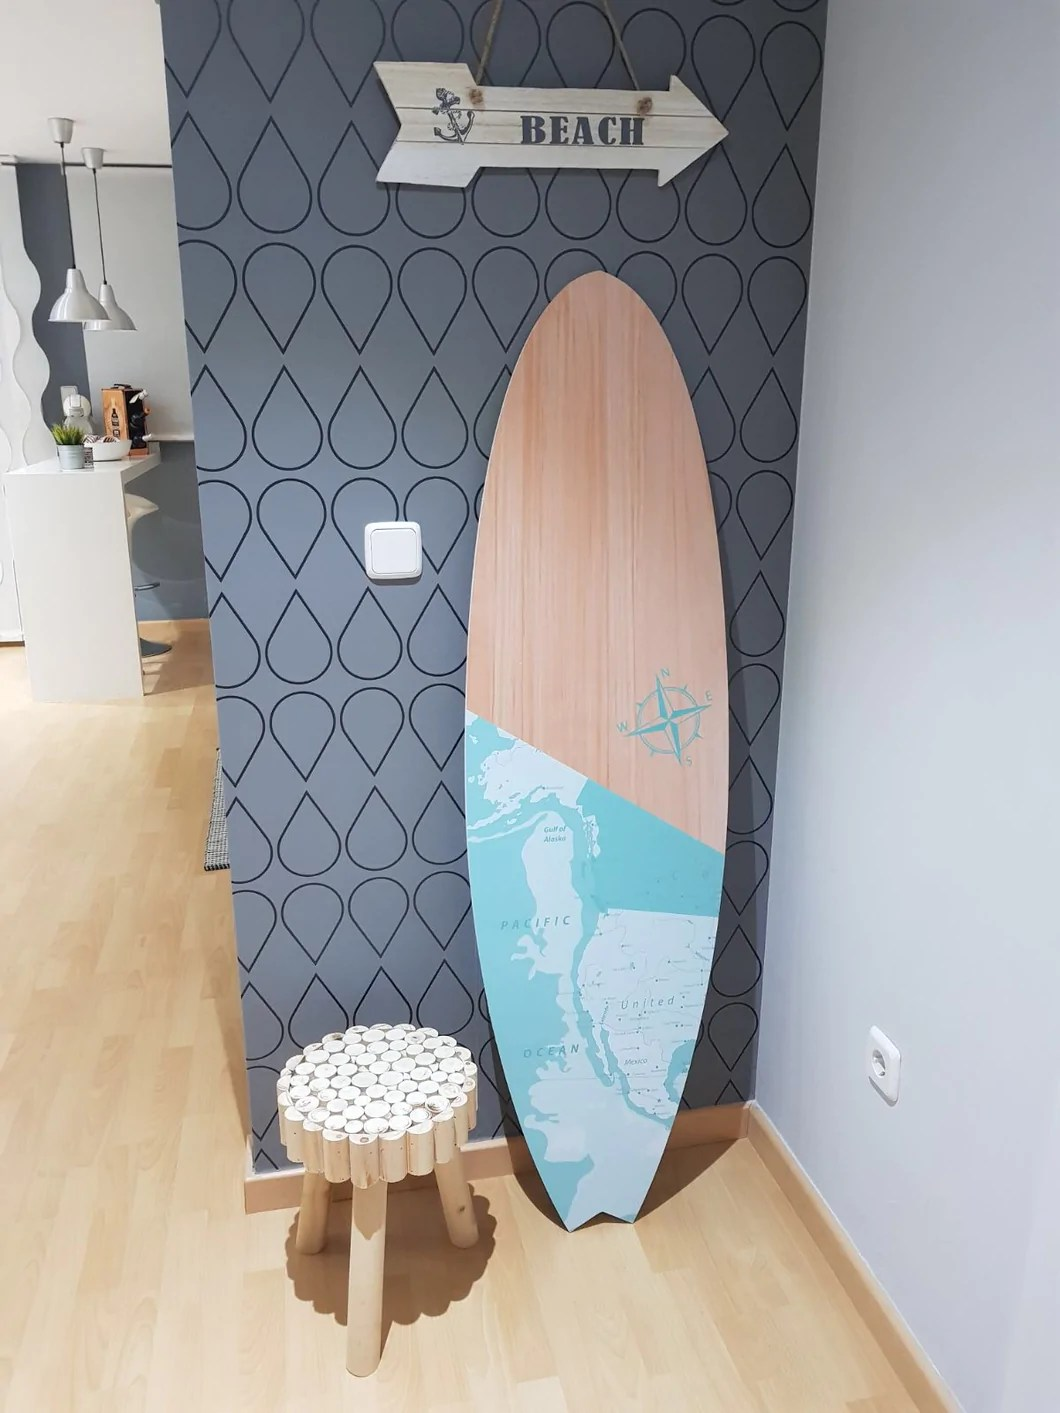 Tablas De Surf Decorativas Tabla Surf Decoración Madera Marineando